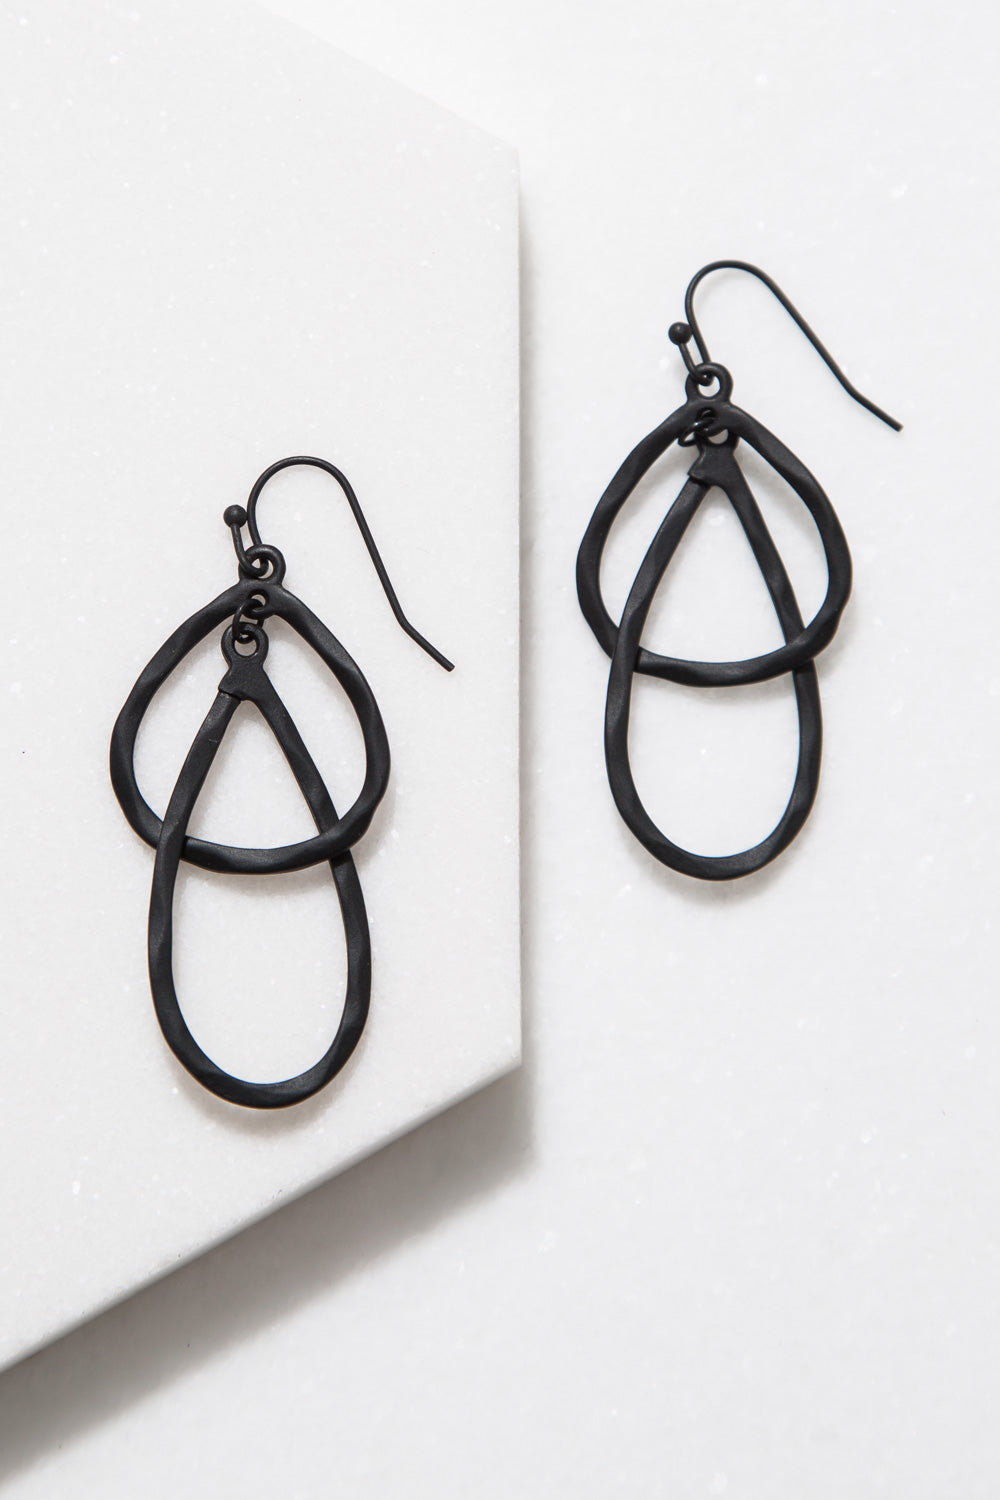 Type 4 Matter Of Fact Earrings